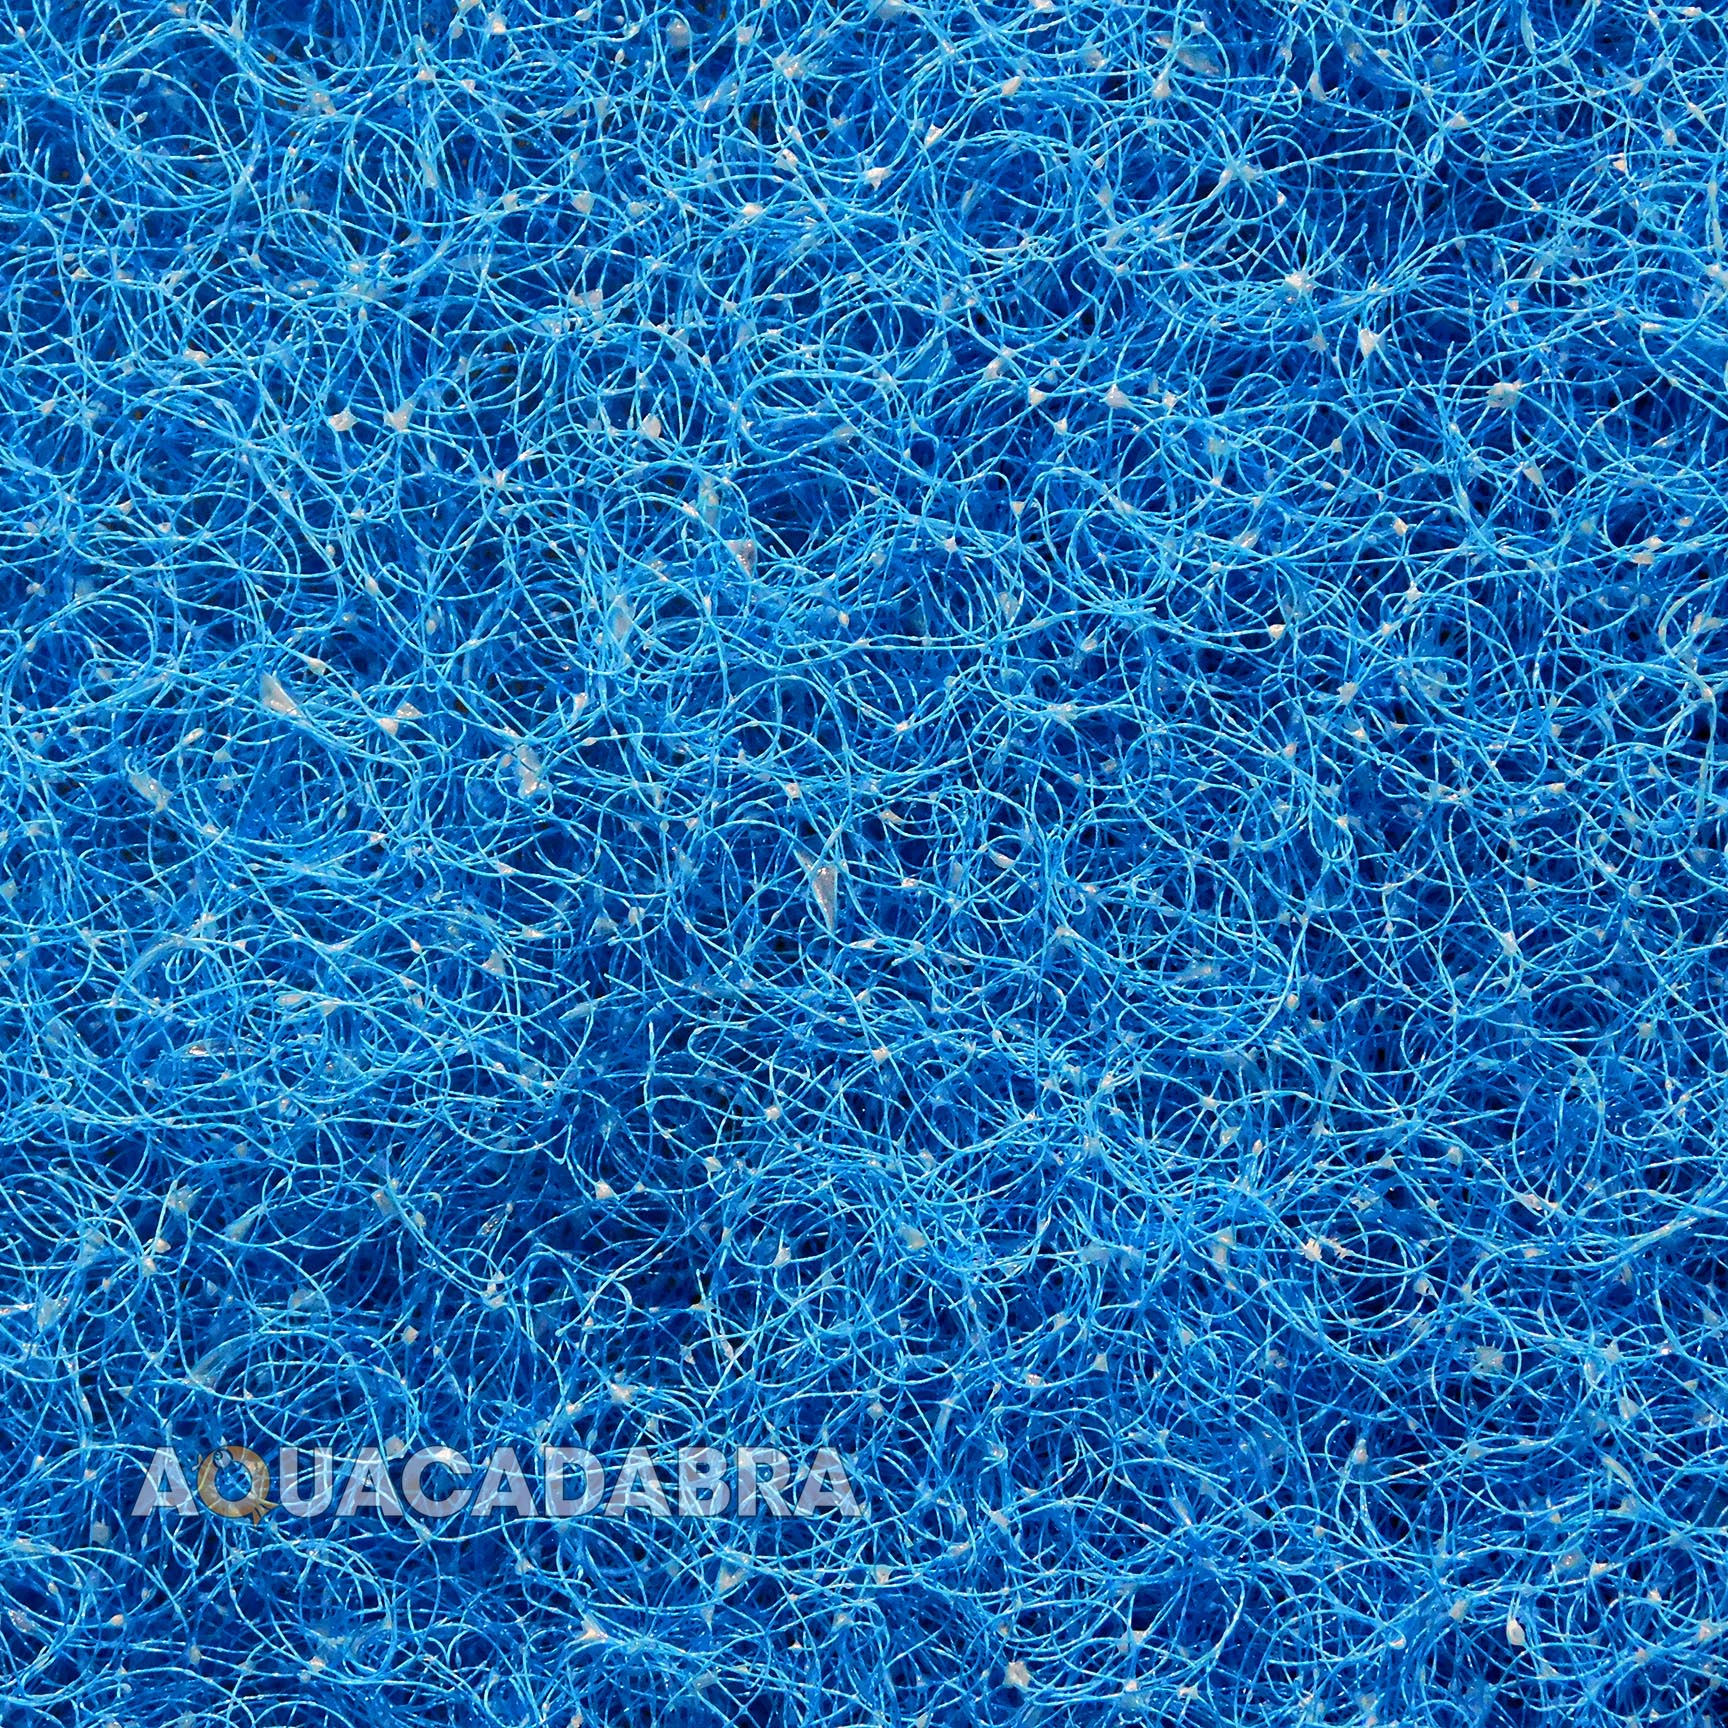 Blue 2m x 1m 50mm matsumi japanese jap matting mat koi for Koi pond size